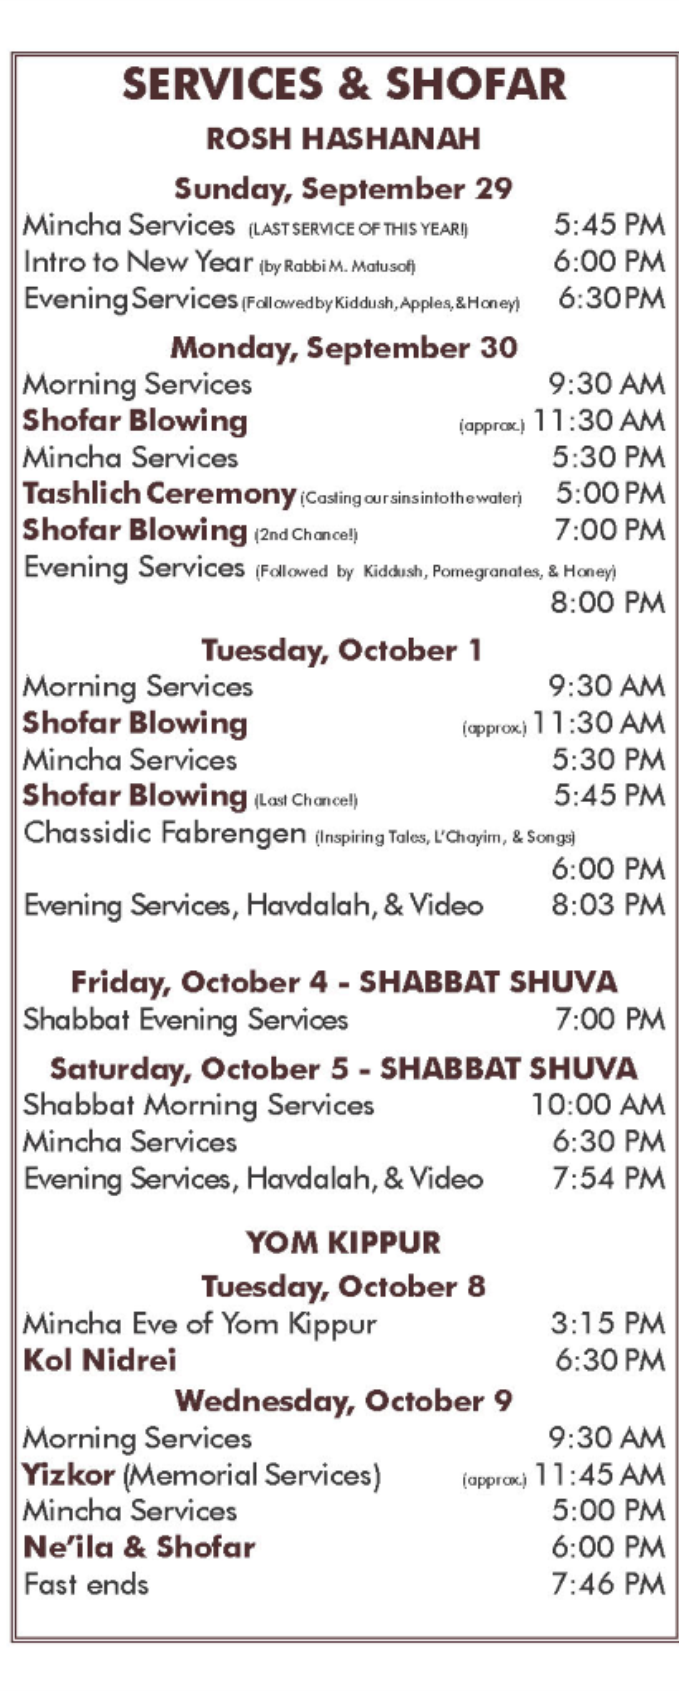 Shofar_and_Services.png